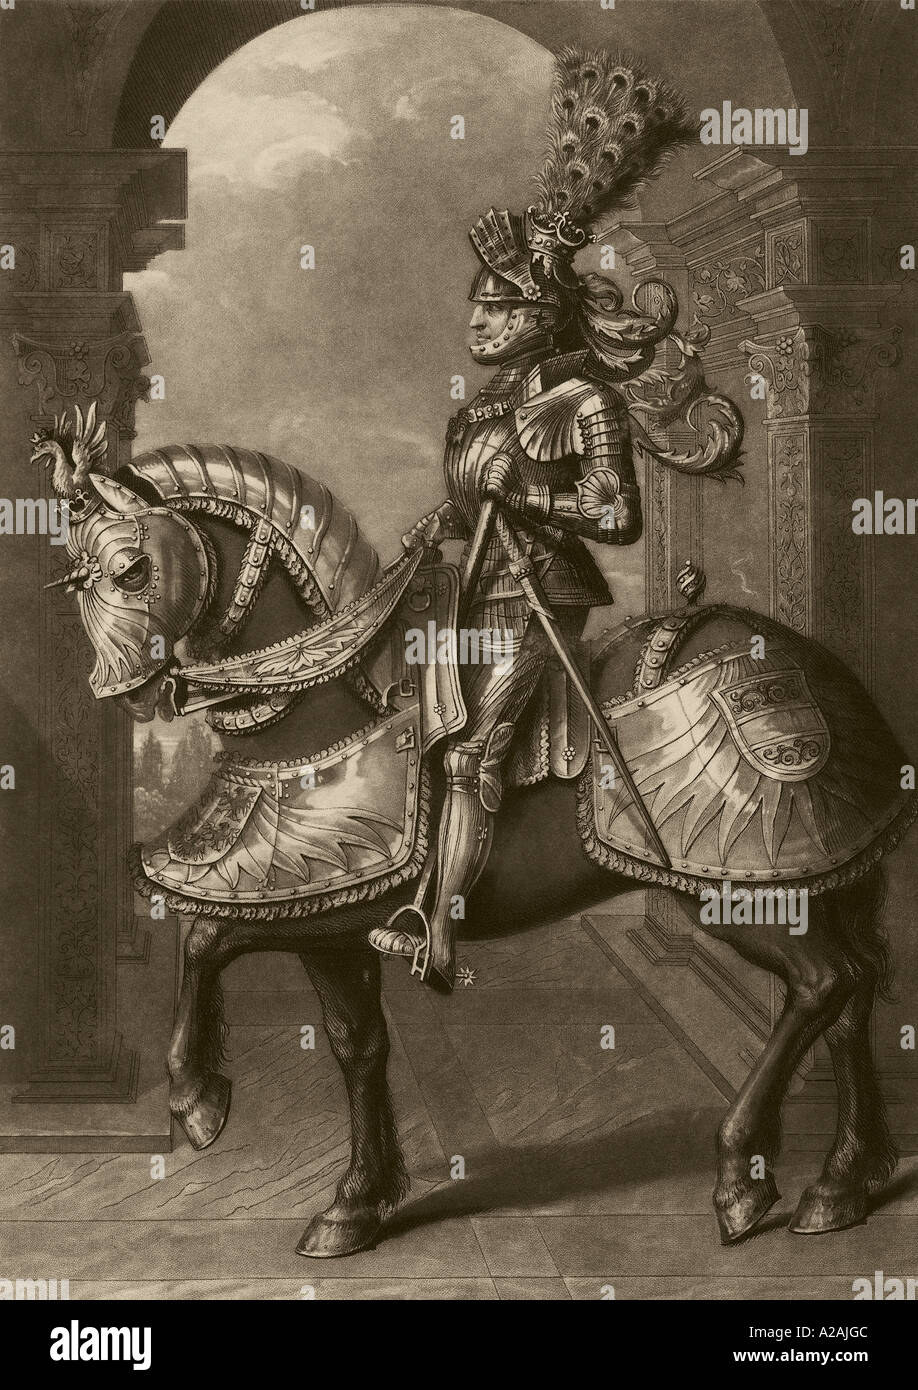 King knight in armor armour on horse horseback steed charger Stock Photo